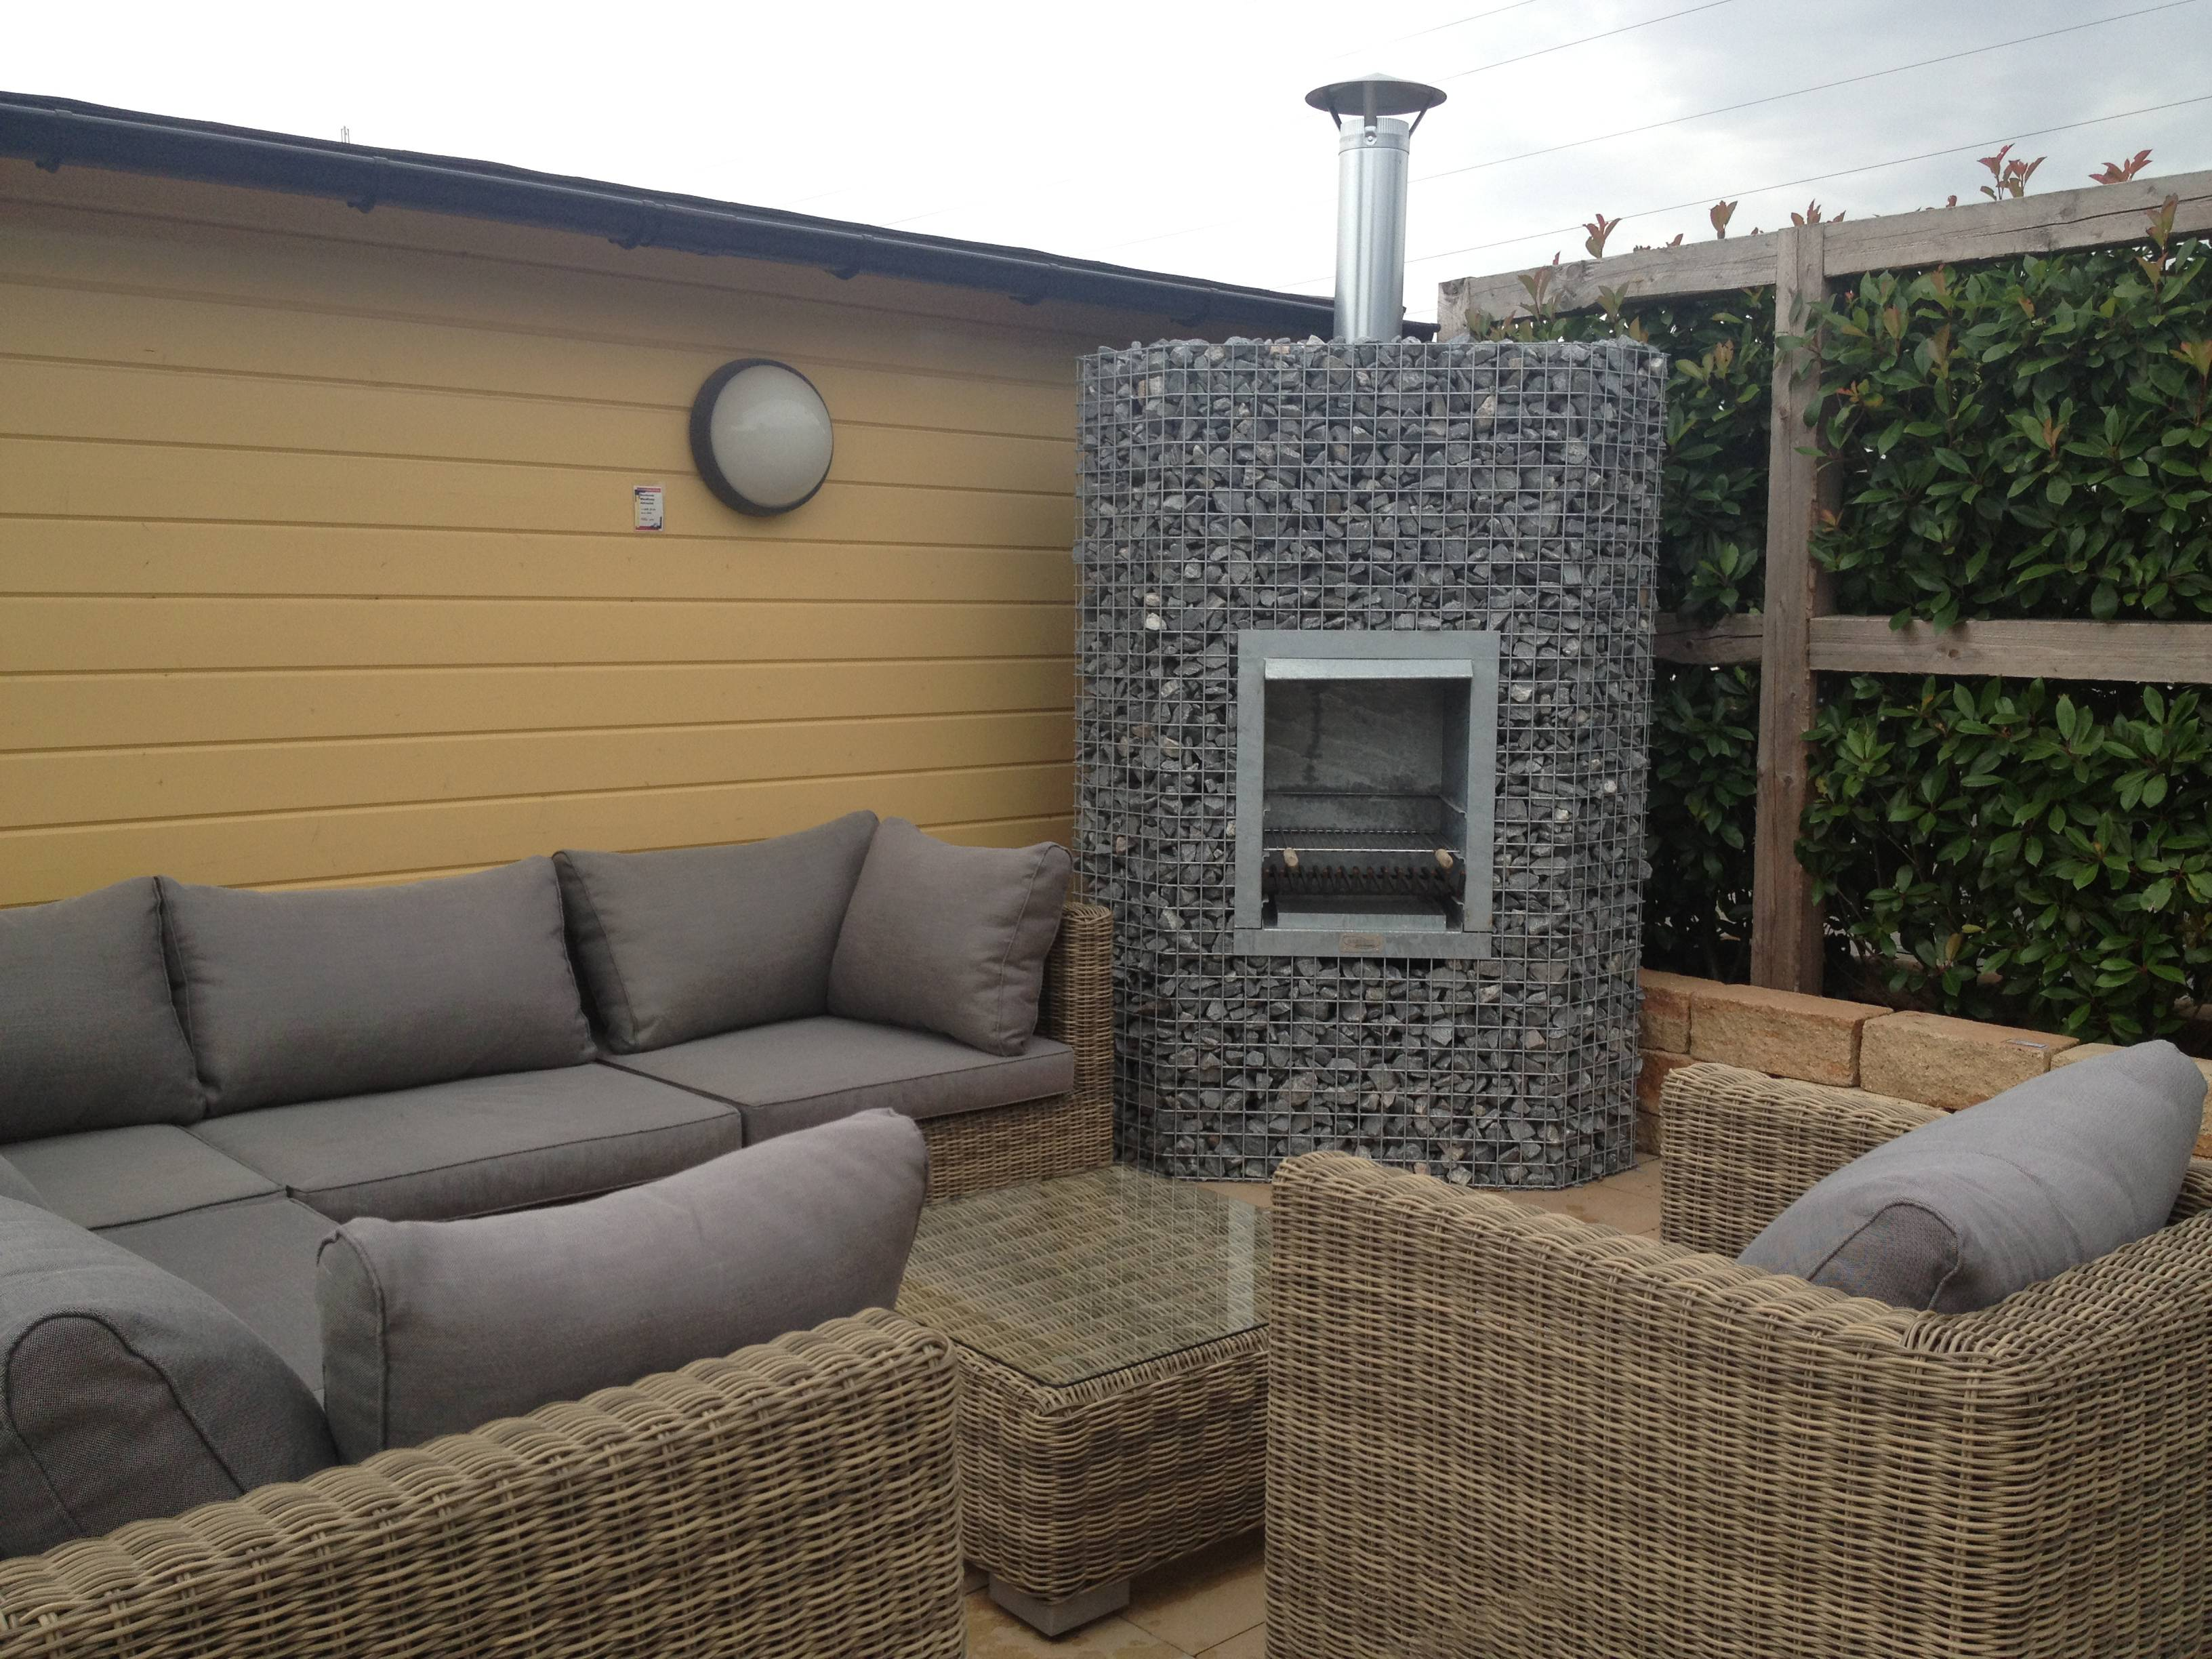 Barbecue En Pierre De Parement sikasil-c, products multi-purpose for joints and cracks in sika